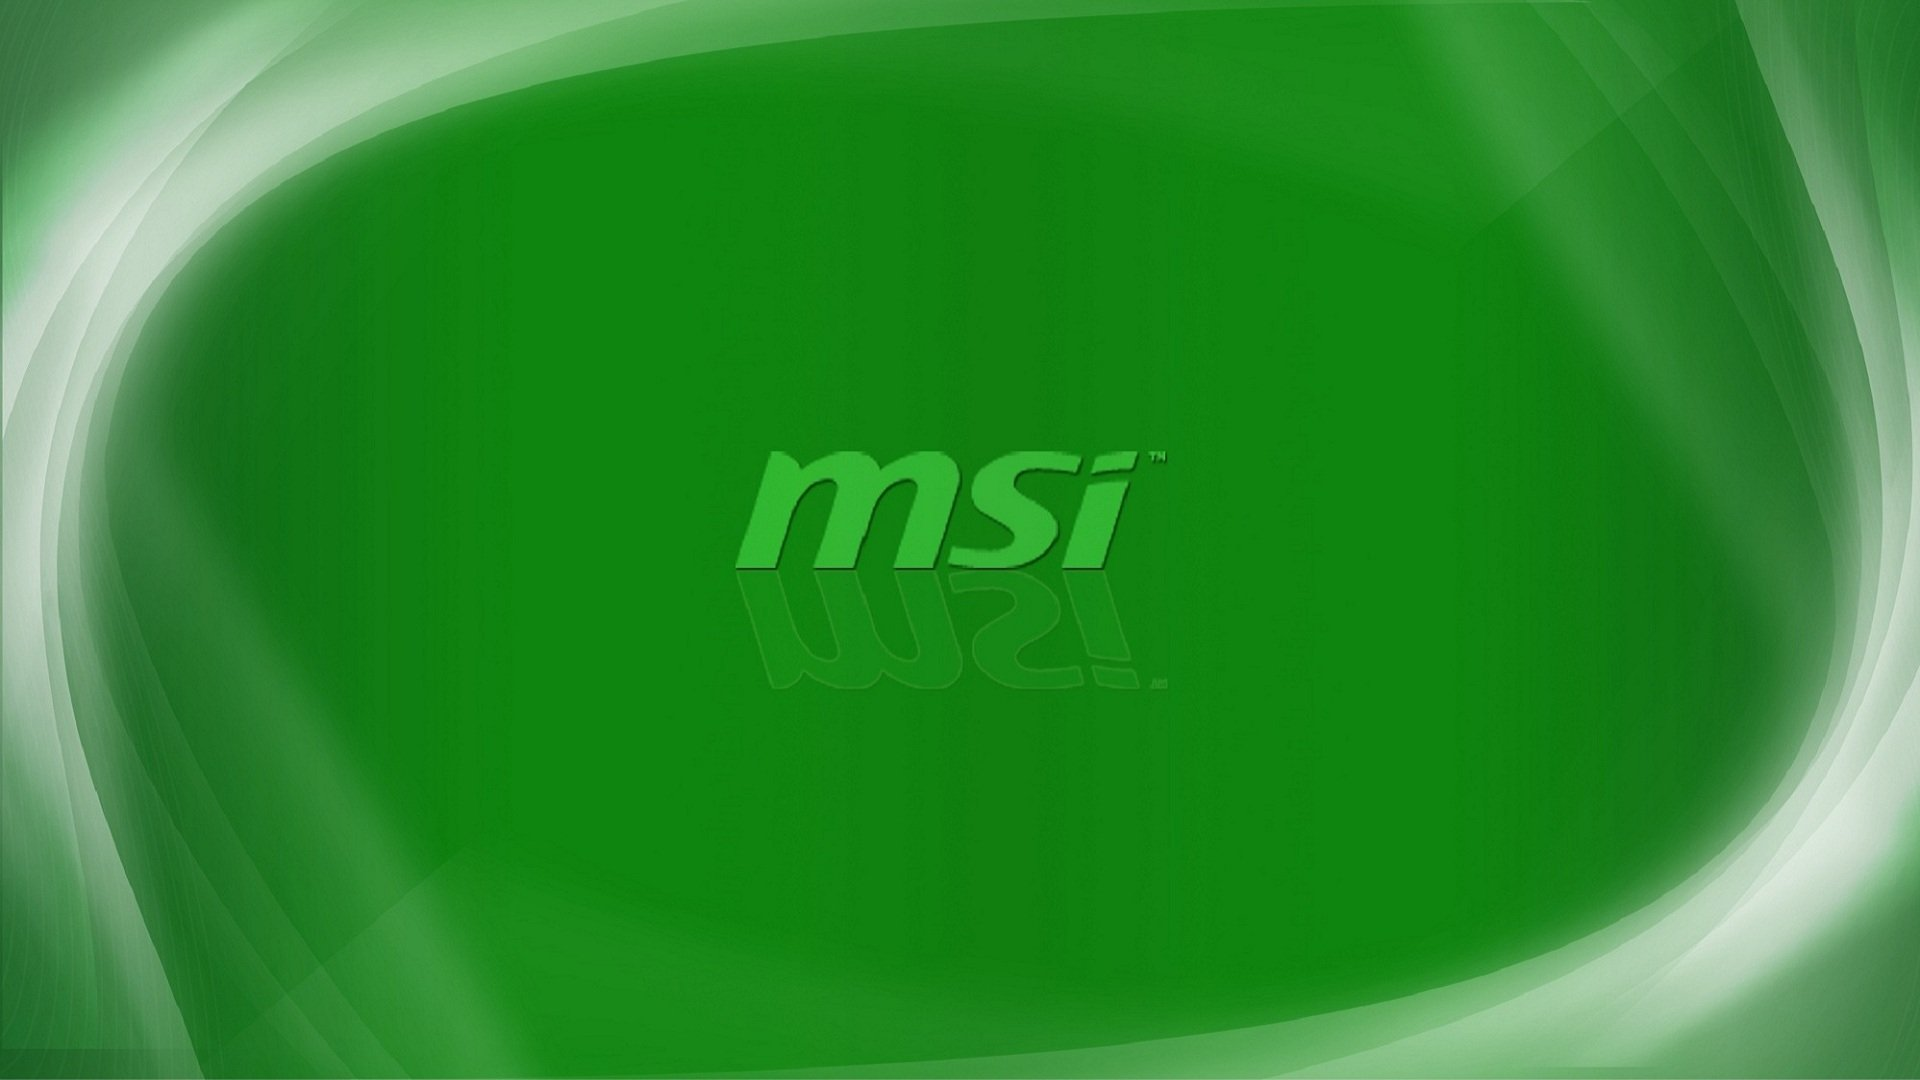 46 msi wallpaper hd 1920x1080 on wallpapersafari